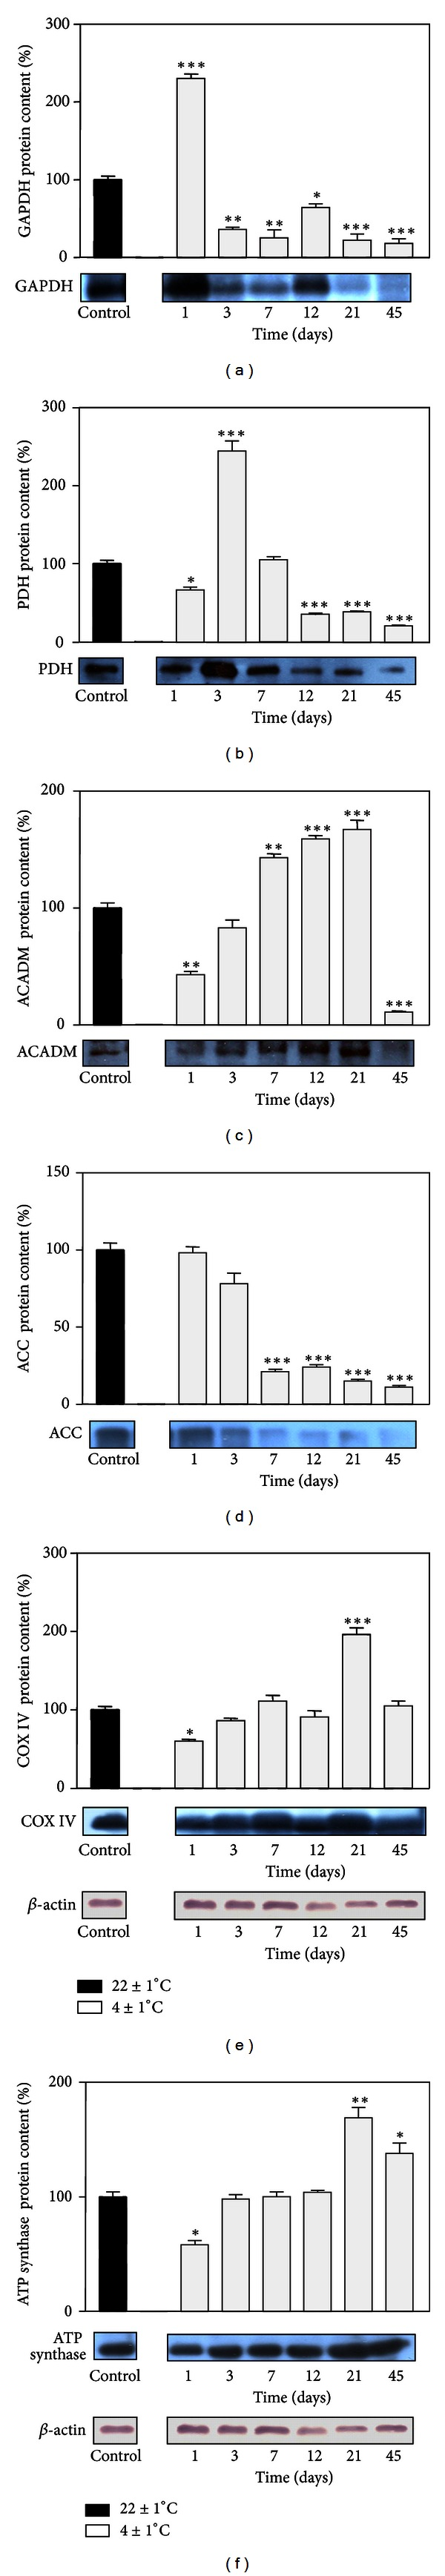 Changes in GAPDH (a), PDH (b), ACADM (c), ACC (d), subunit IV of cytochrome c oxidase (COX IV) (e), and <t>ATP</t> <t>synthase</t> (f) protein levels in rat retroperitoneal depot of white fat tissue after different time periods of cold exposure. Protein content is expressed relative to the control maintained at ro om temperature, which was standardized as 100%. The results of the representative example from three observations are shown. Data were quantified as described in Section 2 . The values represent the mean ± S.E.M. *Compared to control, * P